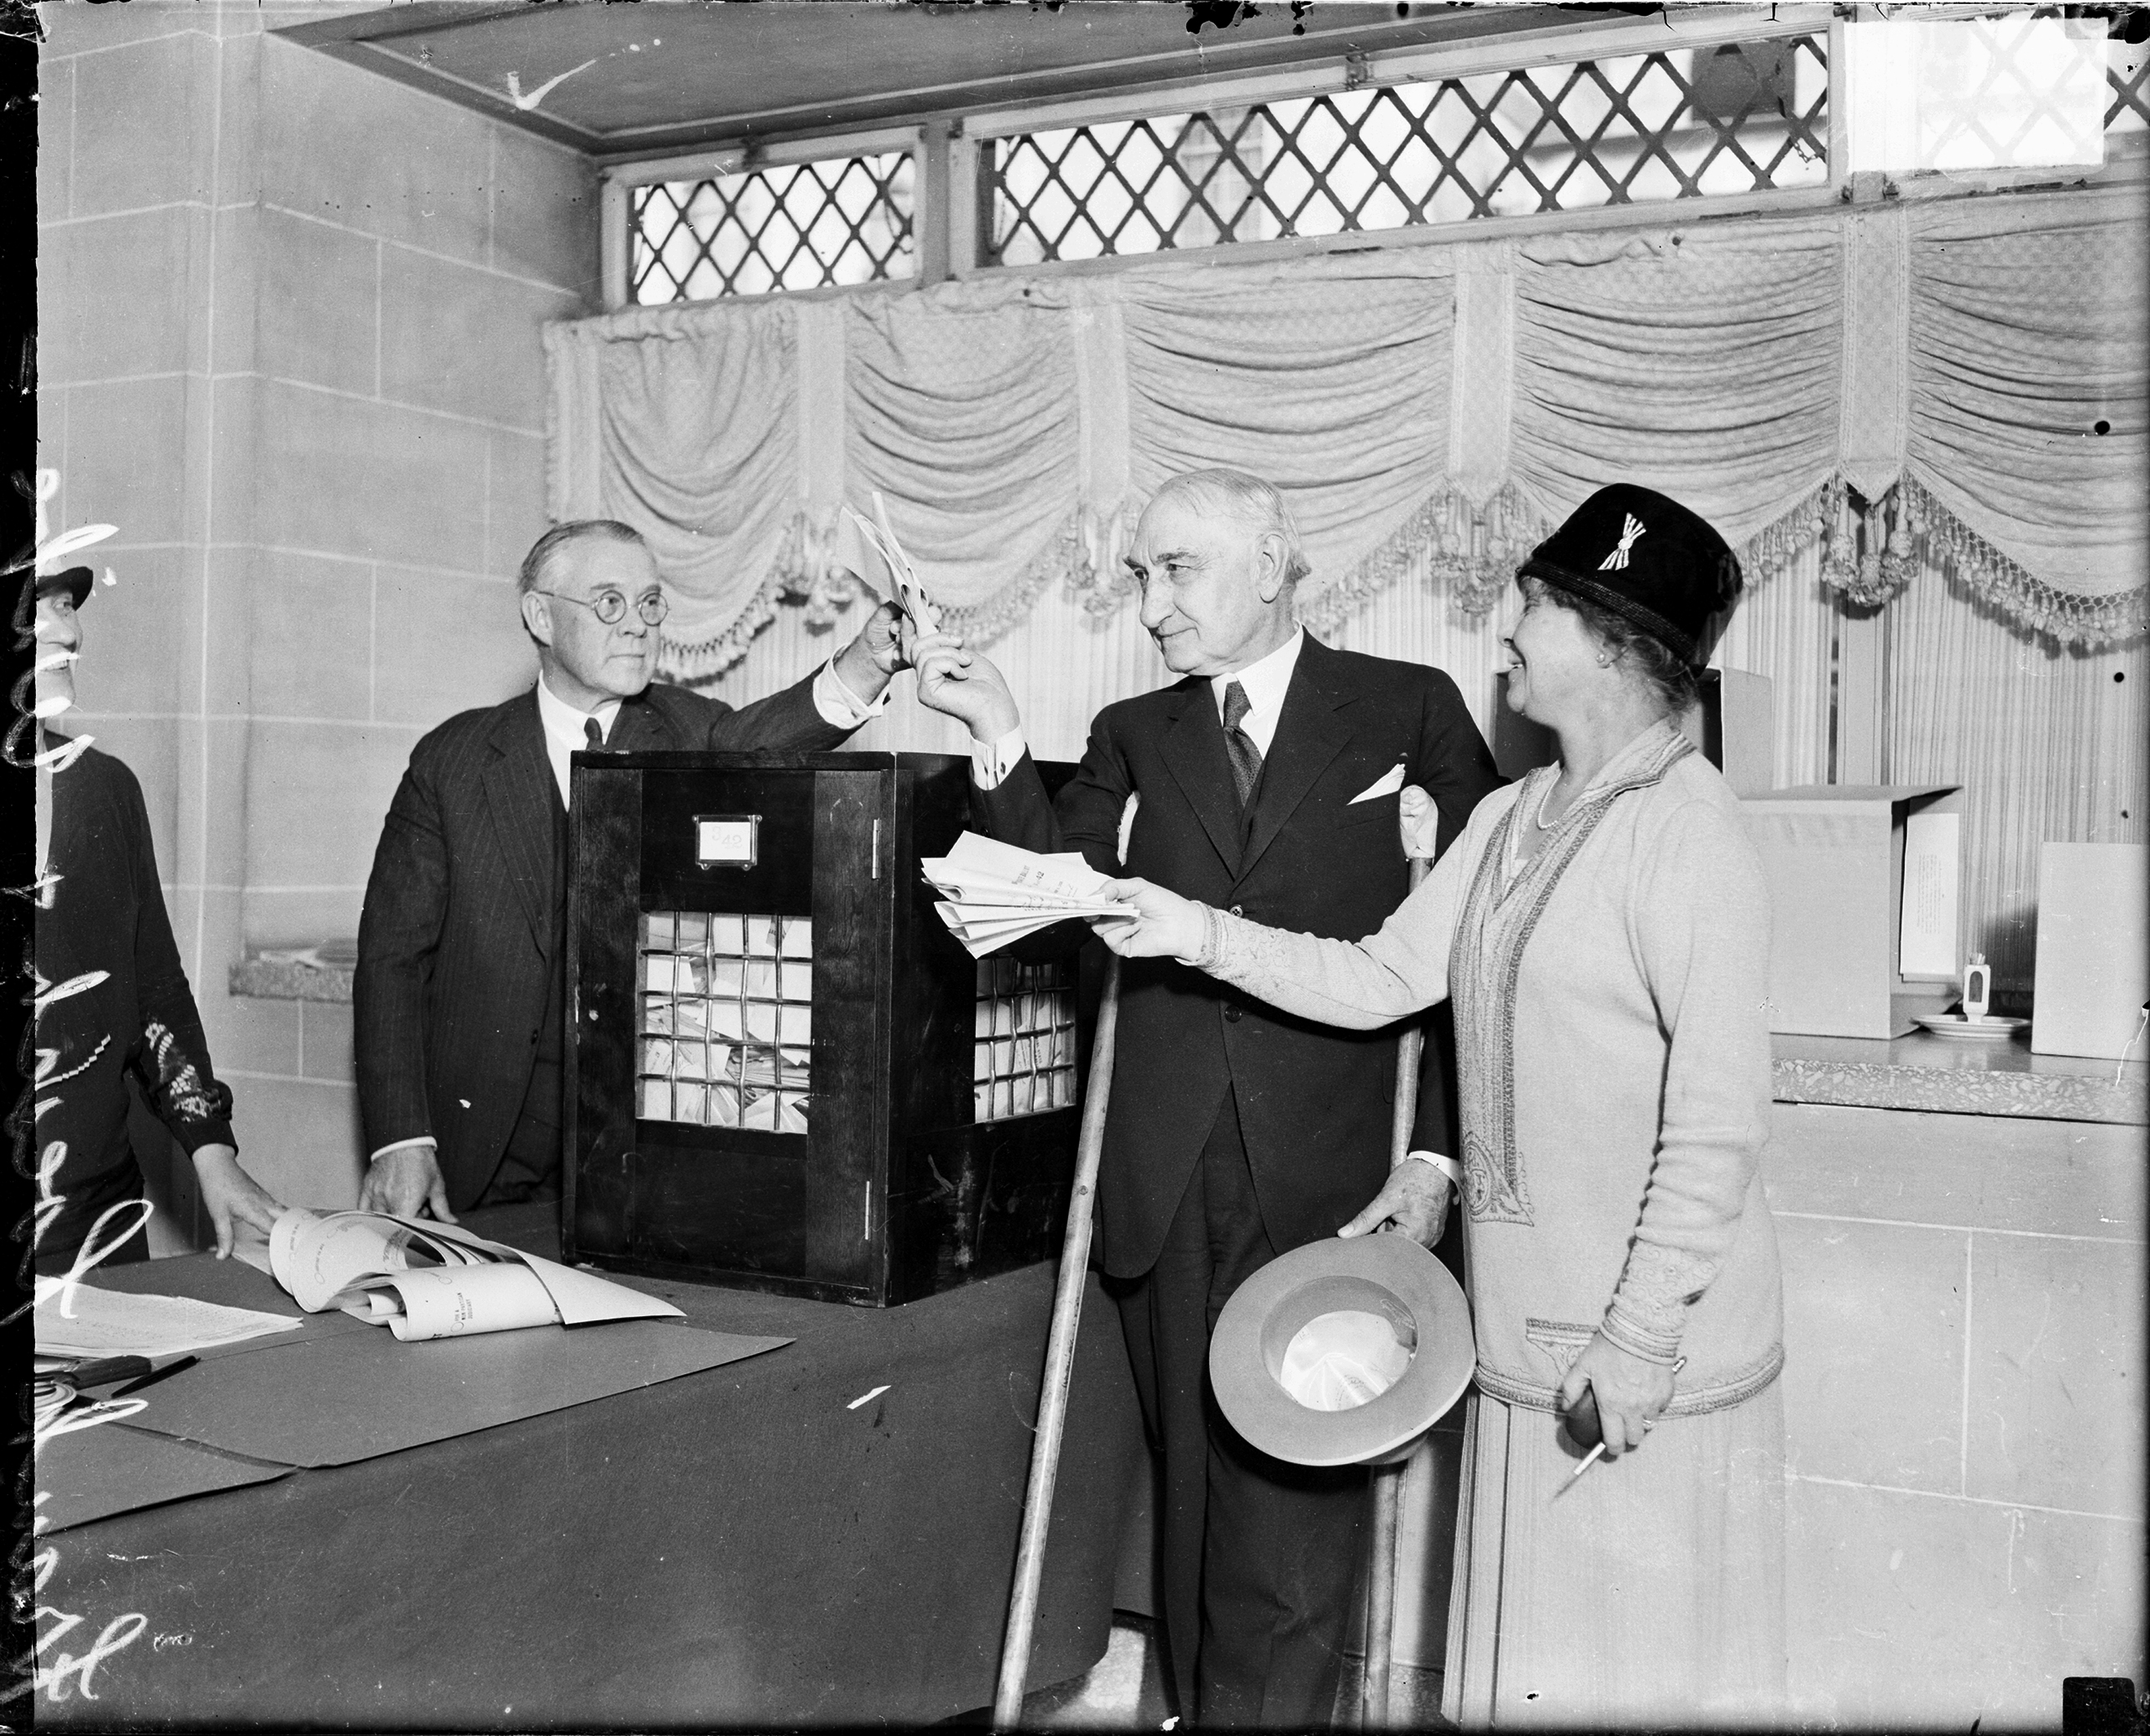 Mr. and Mrs. Frank J. Loesch voting at a voting poll in Chicago, in 1928.